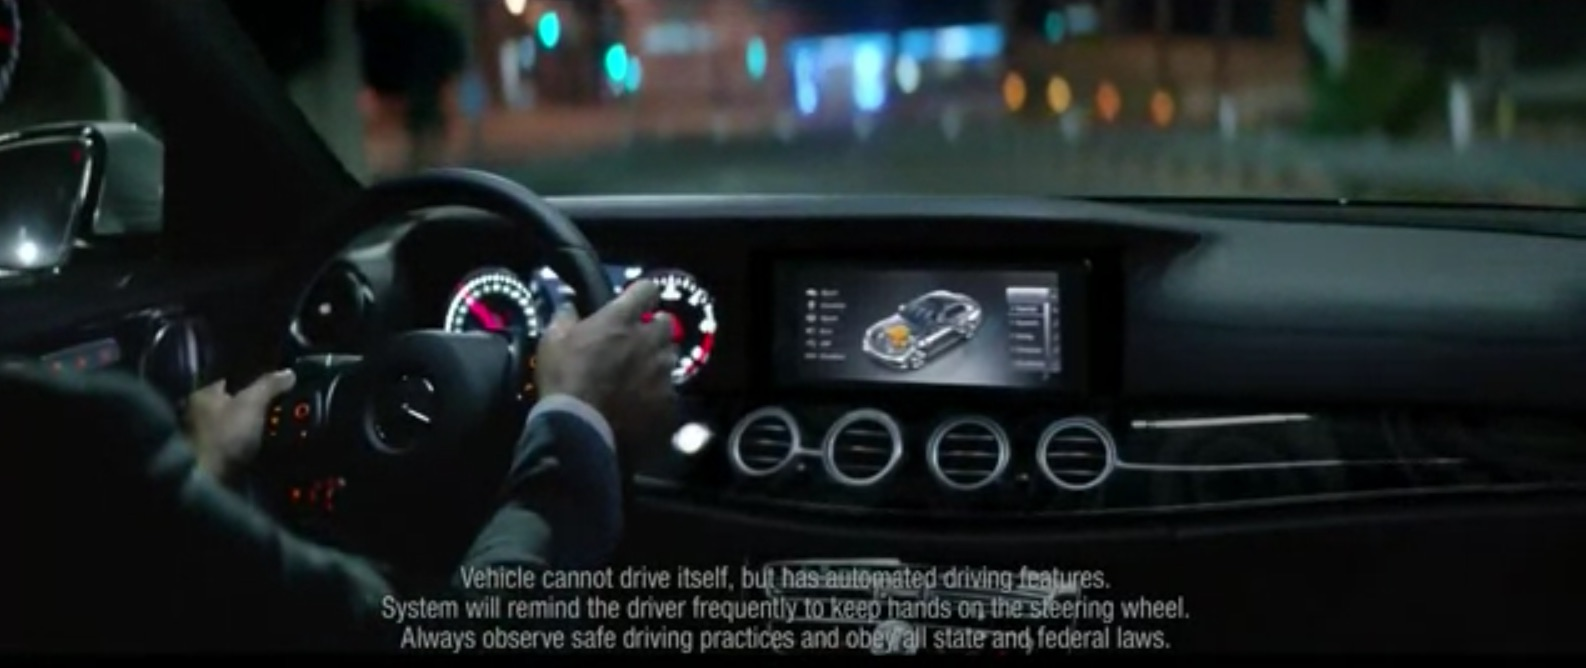 Mercedes Pulls Potentially Confusing Ads For 2017 E-Class That Call The Car 'Self-Driving'